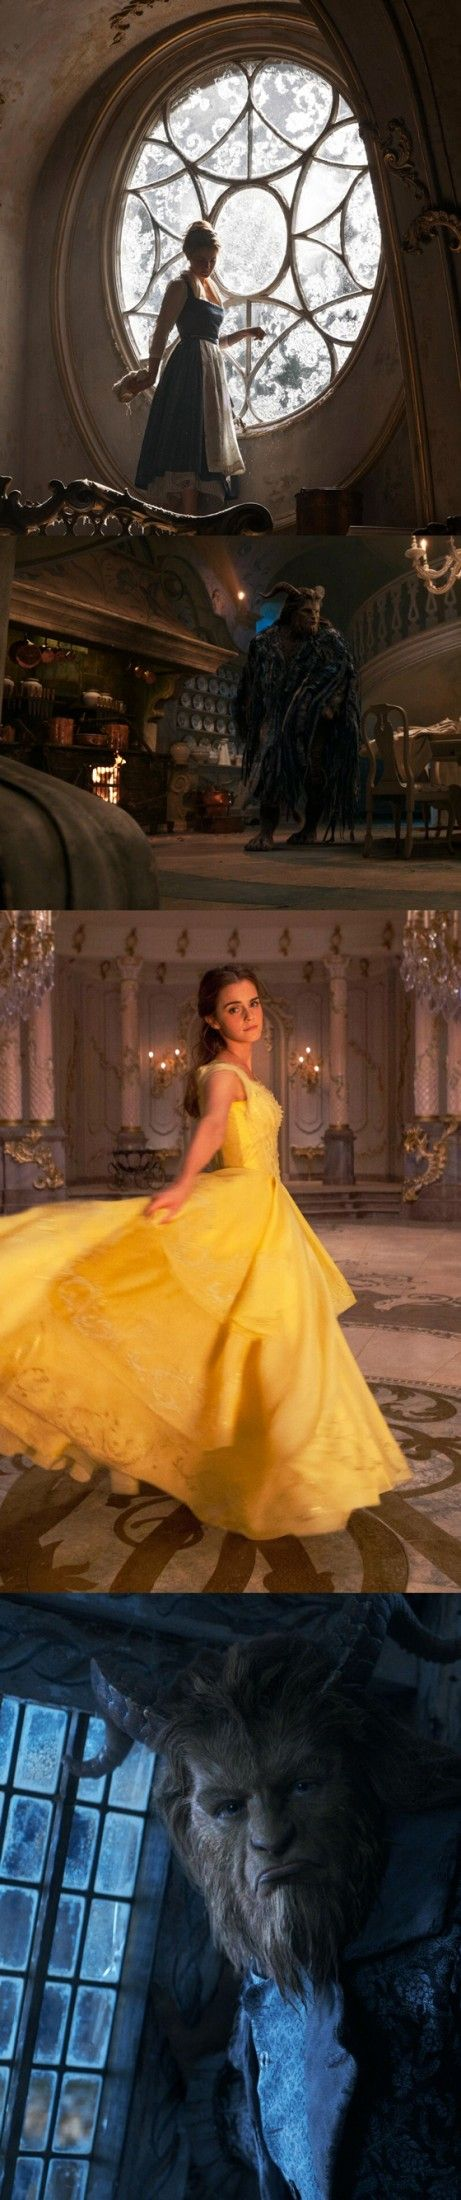 Disney's Beauty and the Beast comes out on Blu-ray & Digital HD June 6! [ad]